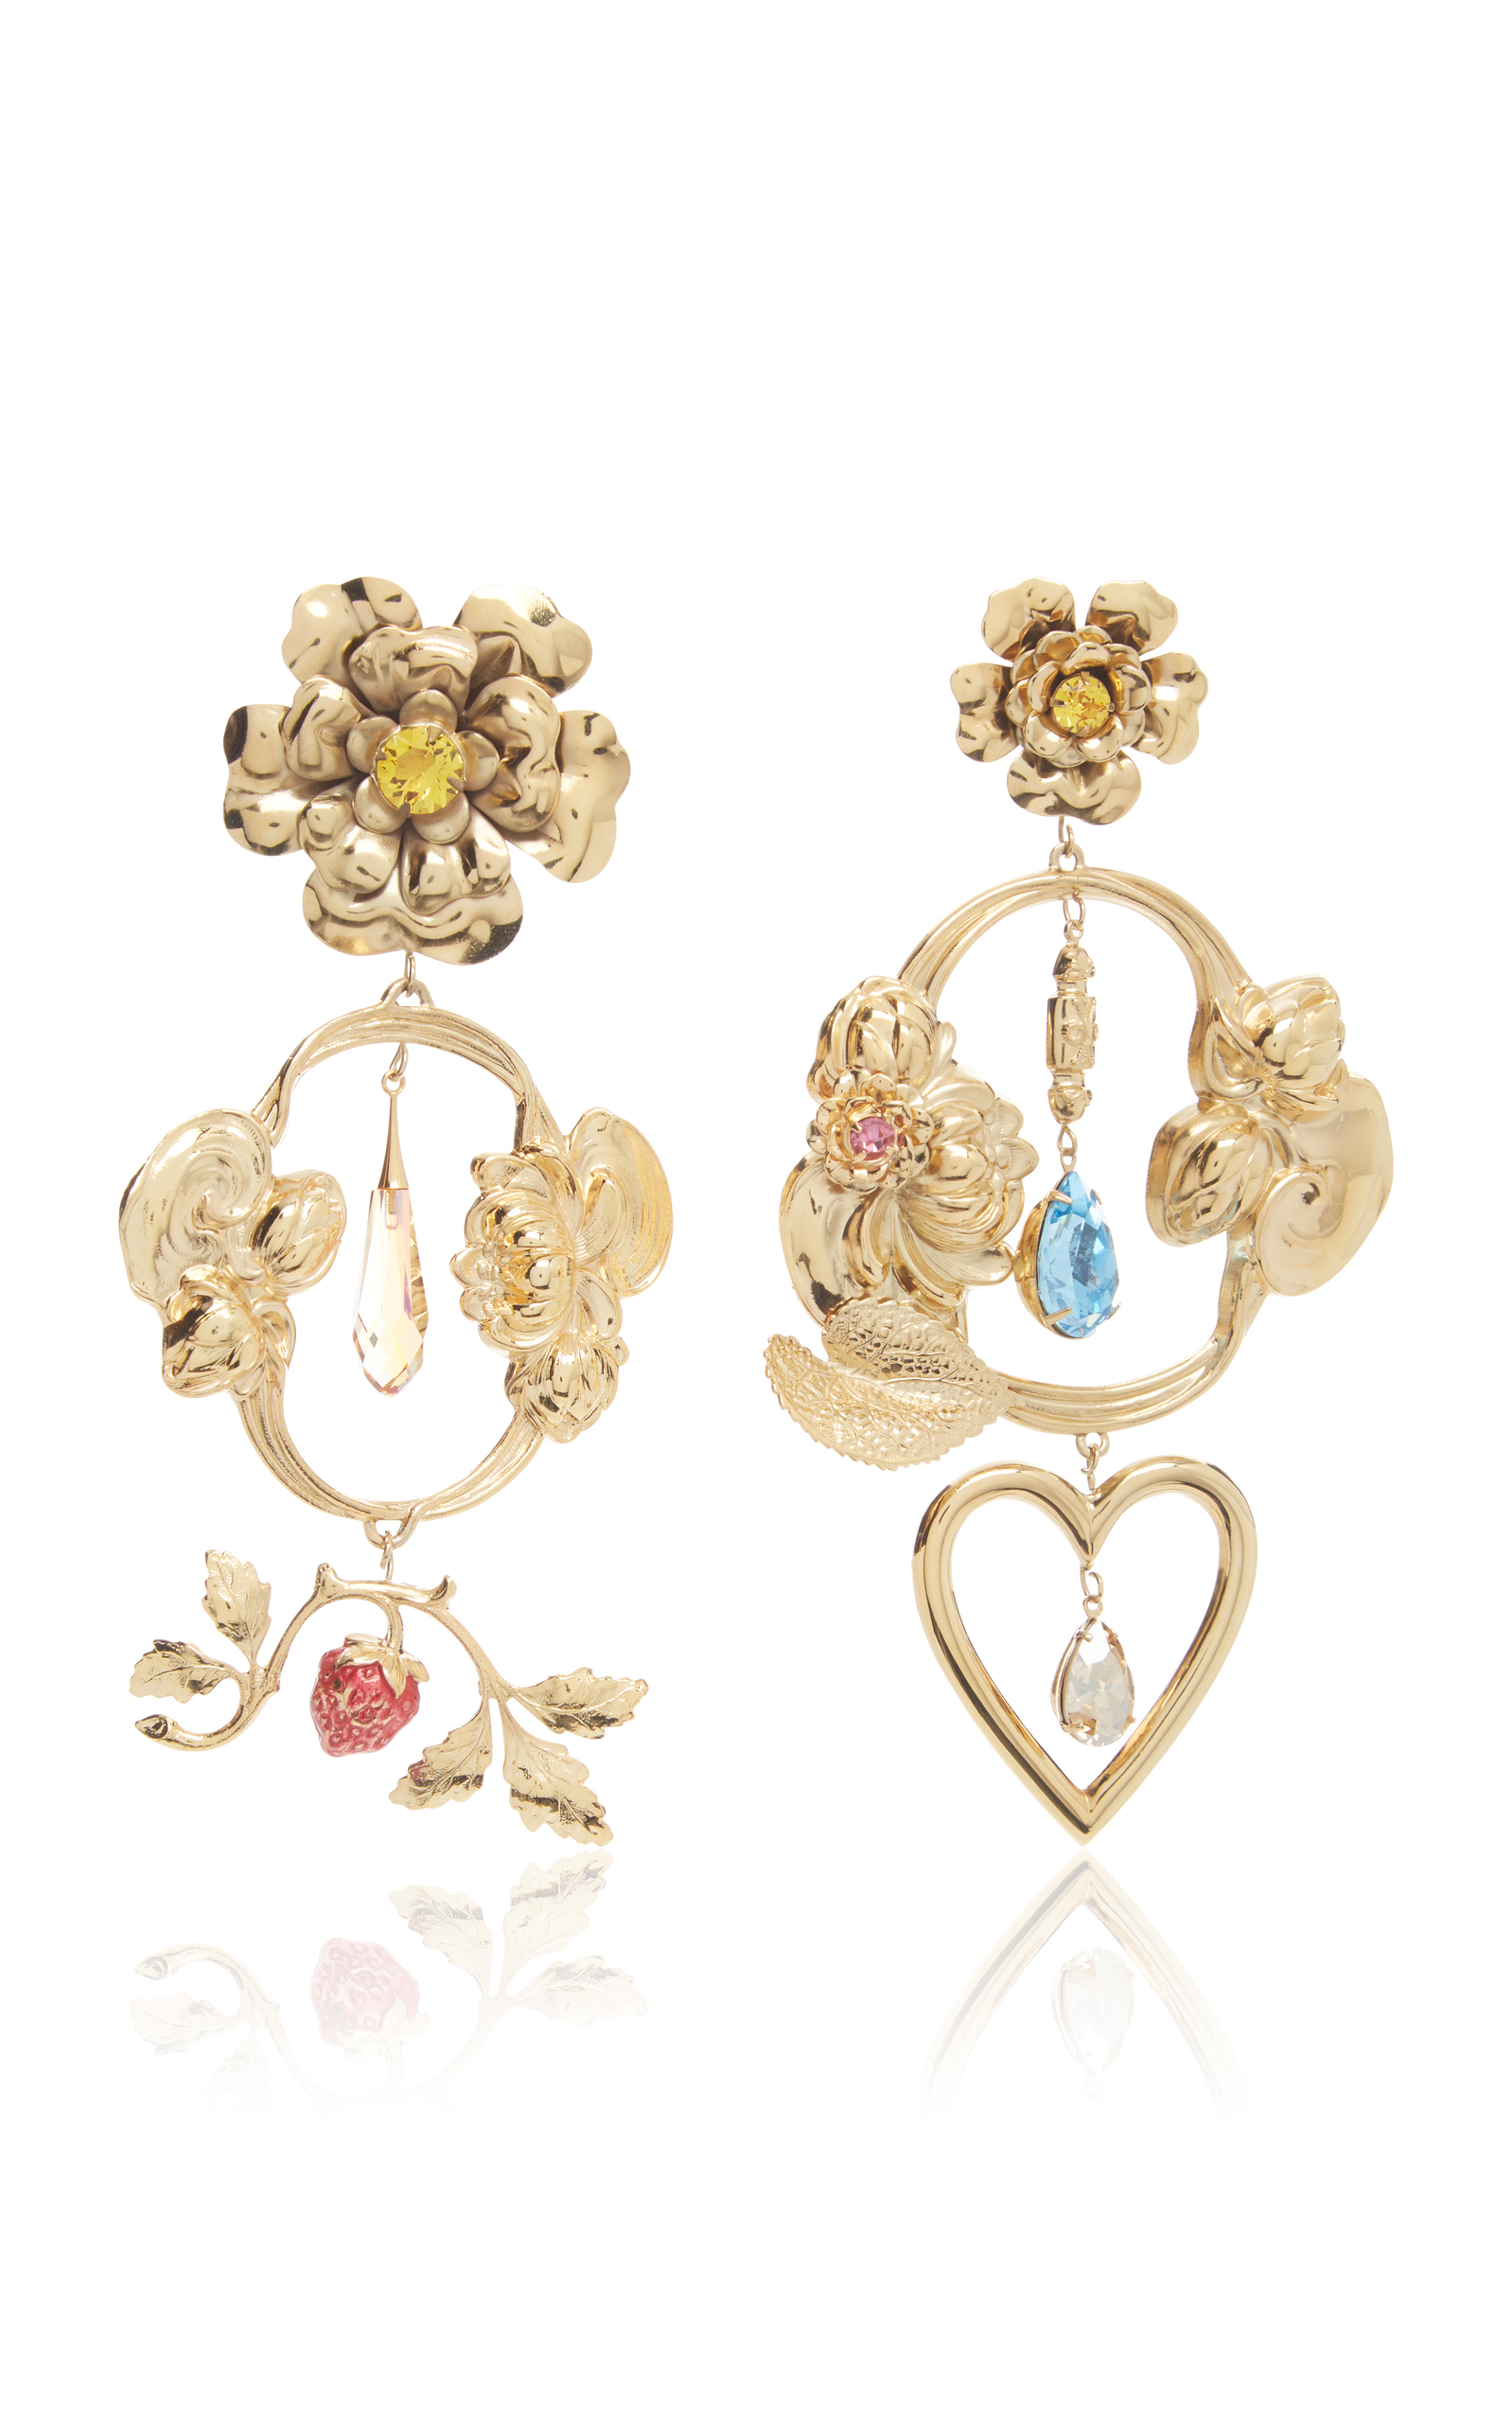 Rodarte Gold Baroque Fl And Heart Dangle Earrings With Swarovski Crystal Details